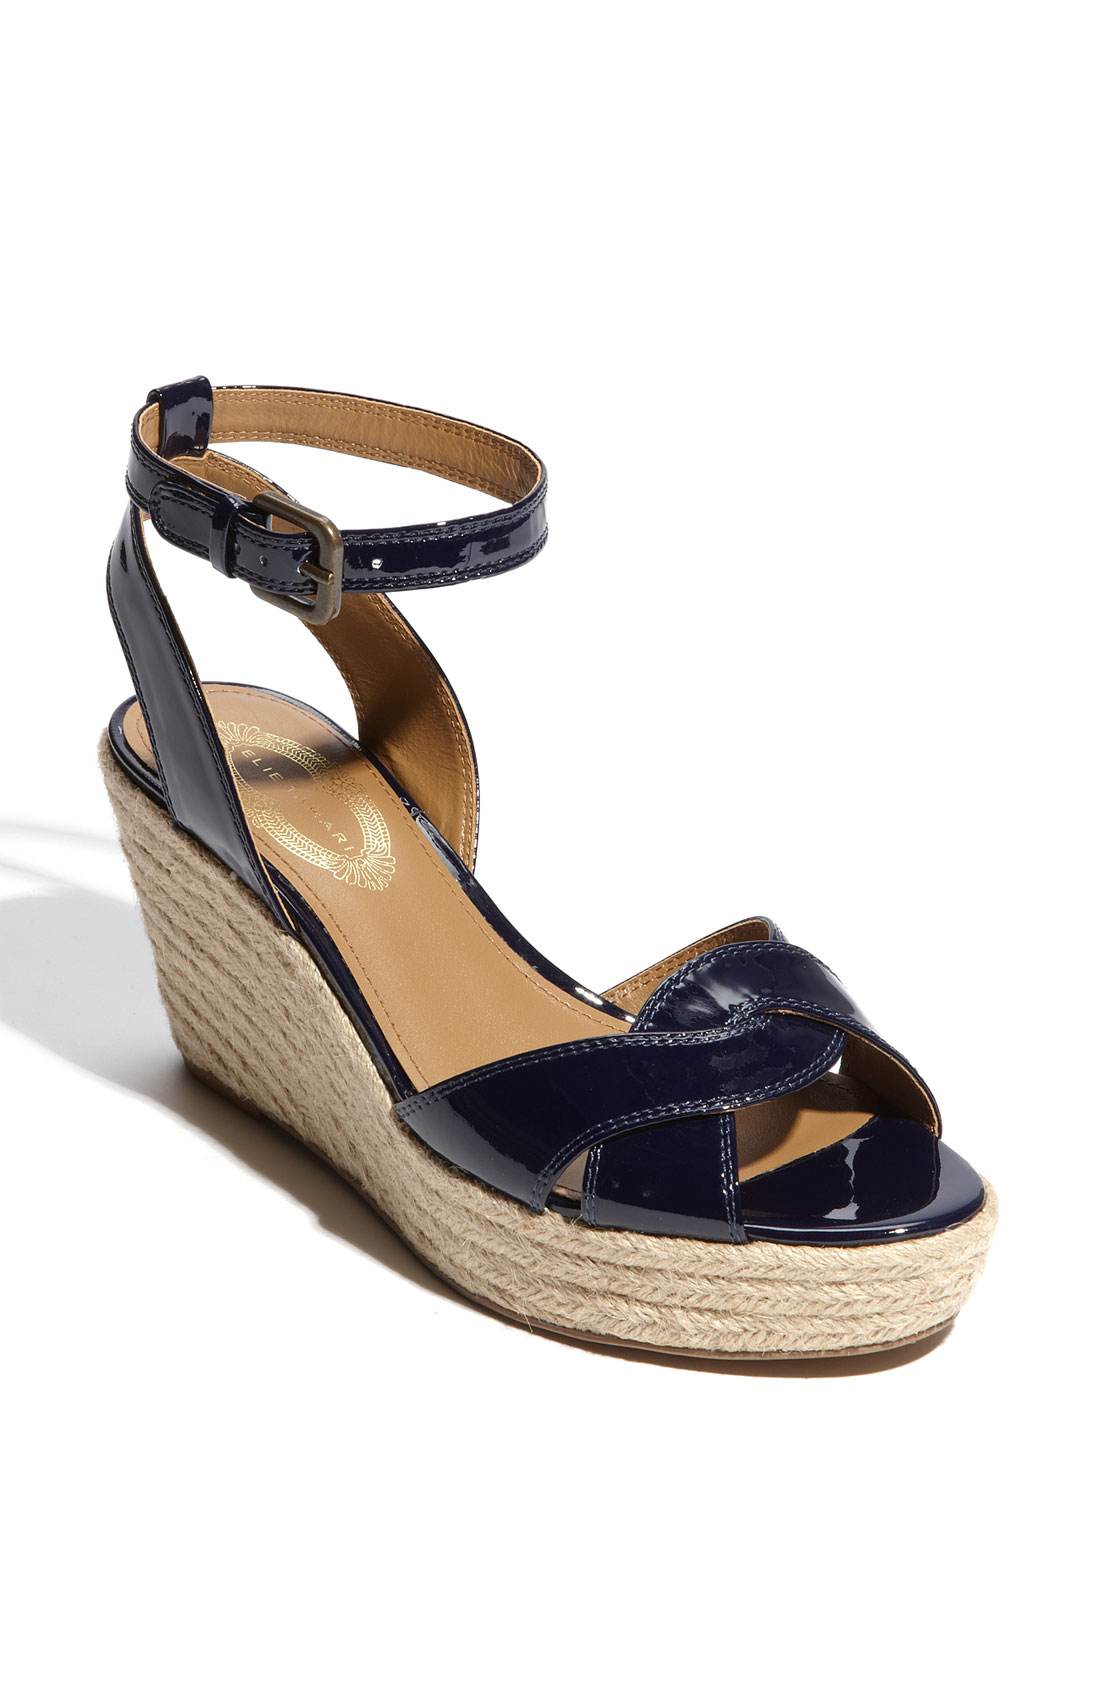 elie tahari wedge sandal in blue atlantic lyst